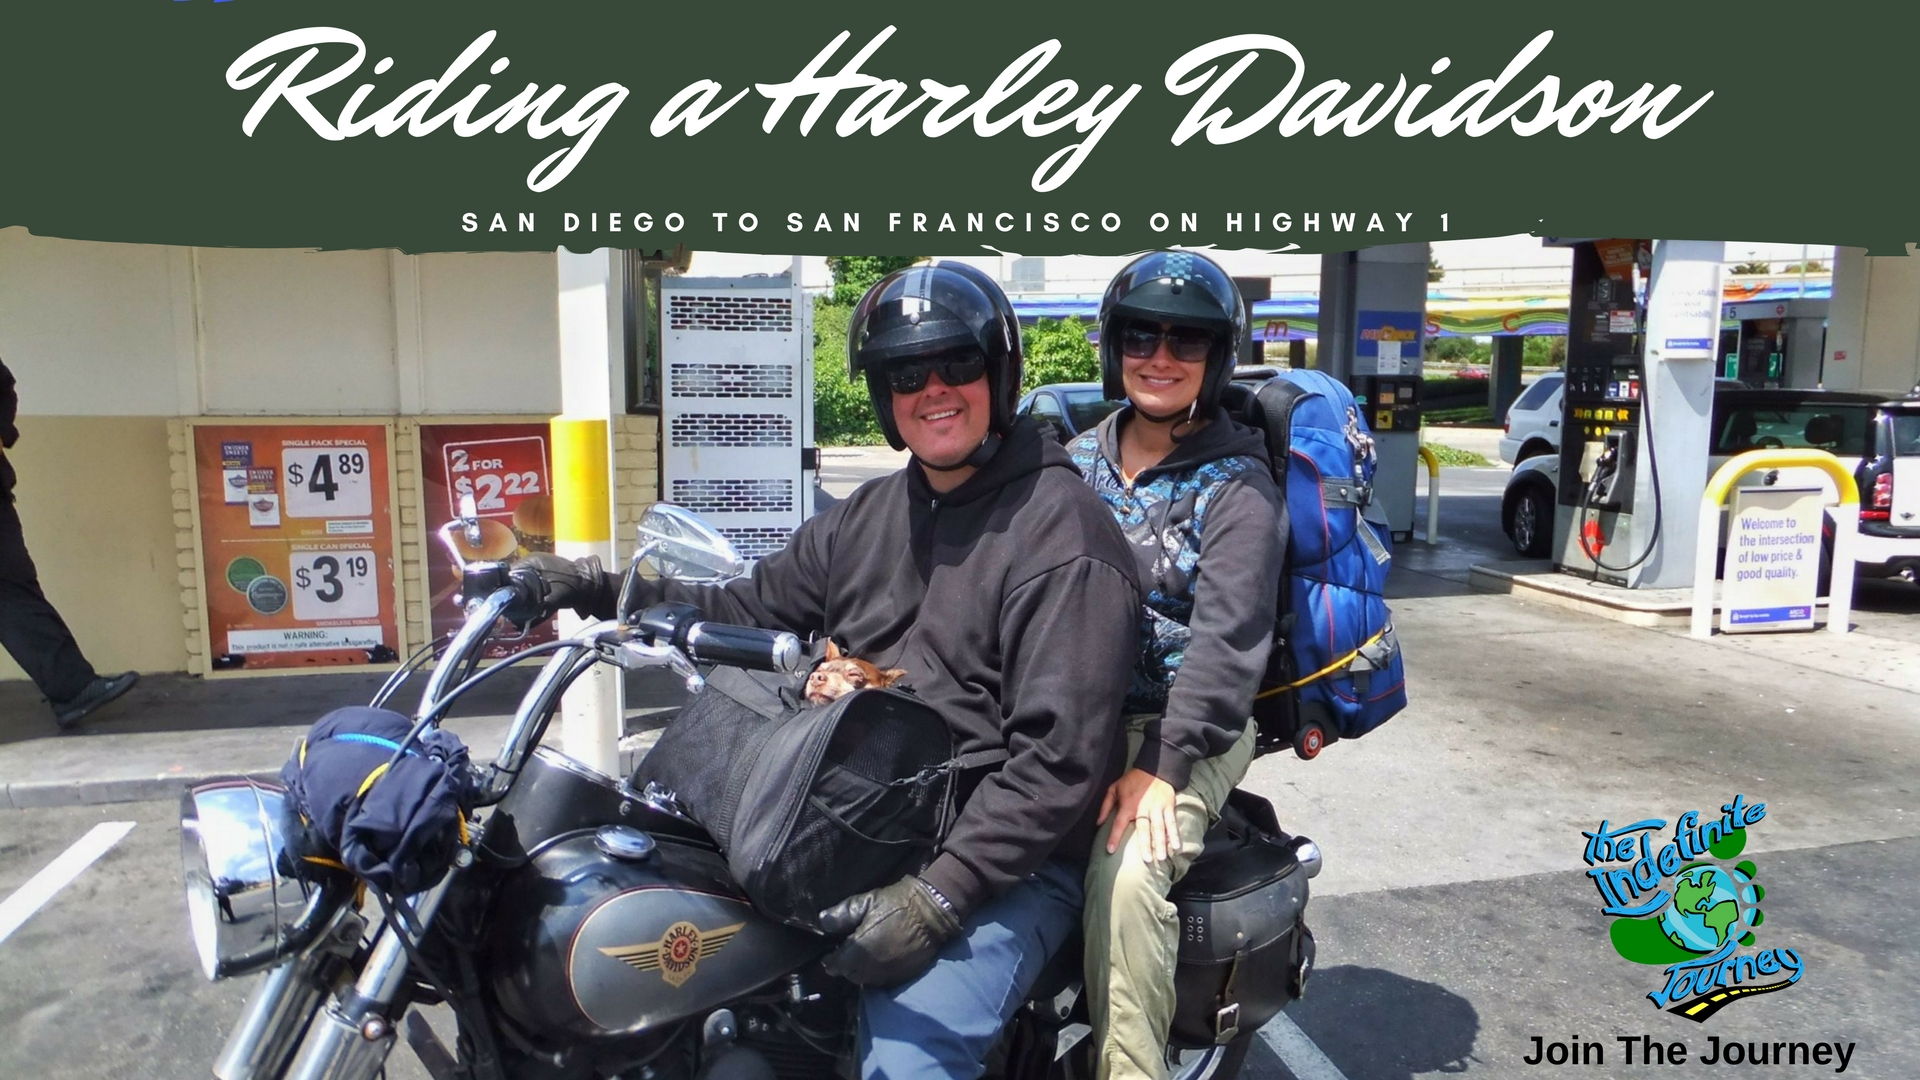 Riding a Harley Davidson from San Diego to San Francisco on Highway 1